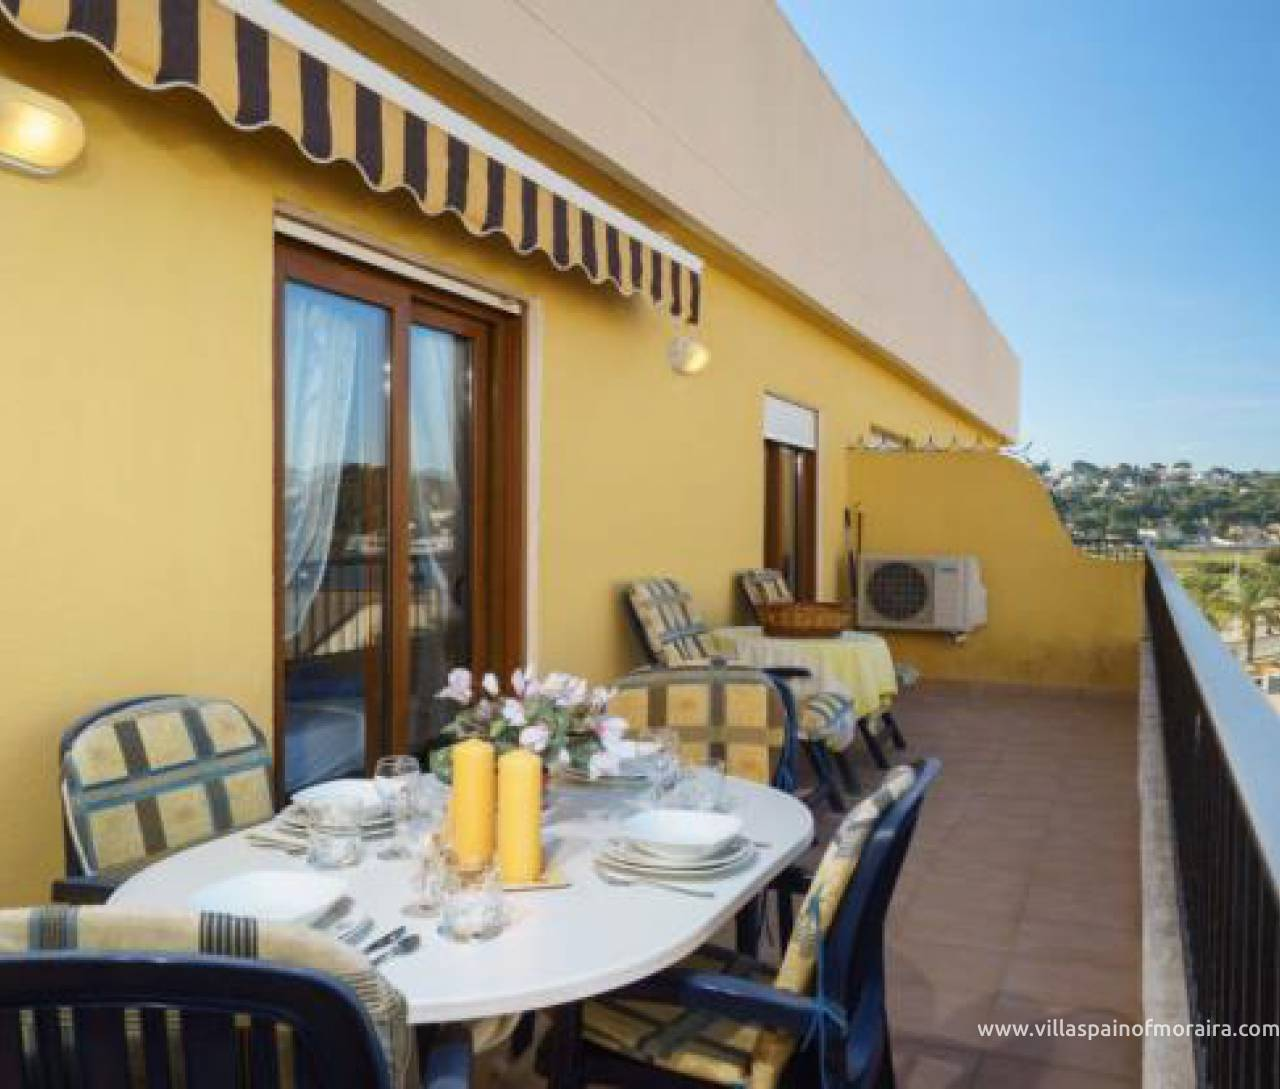 Apartment for sale in Moraira town